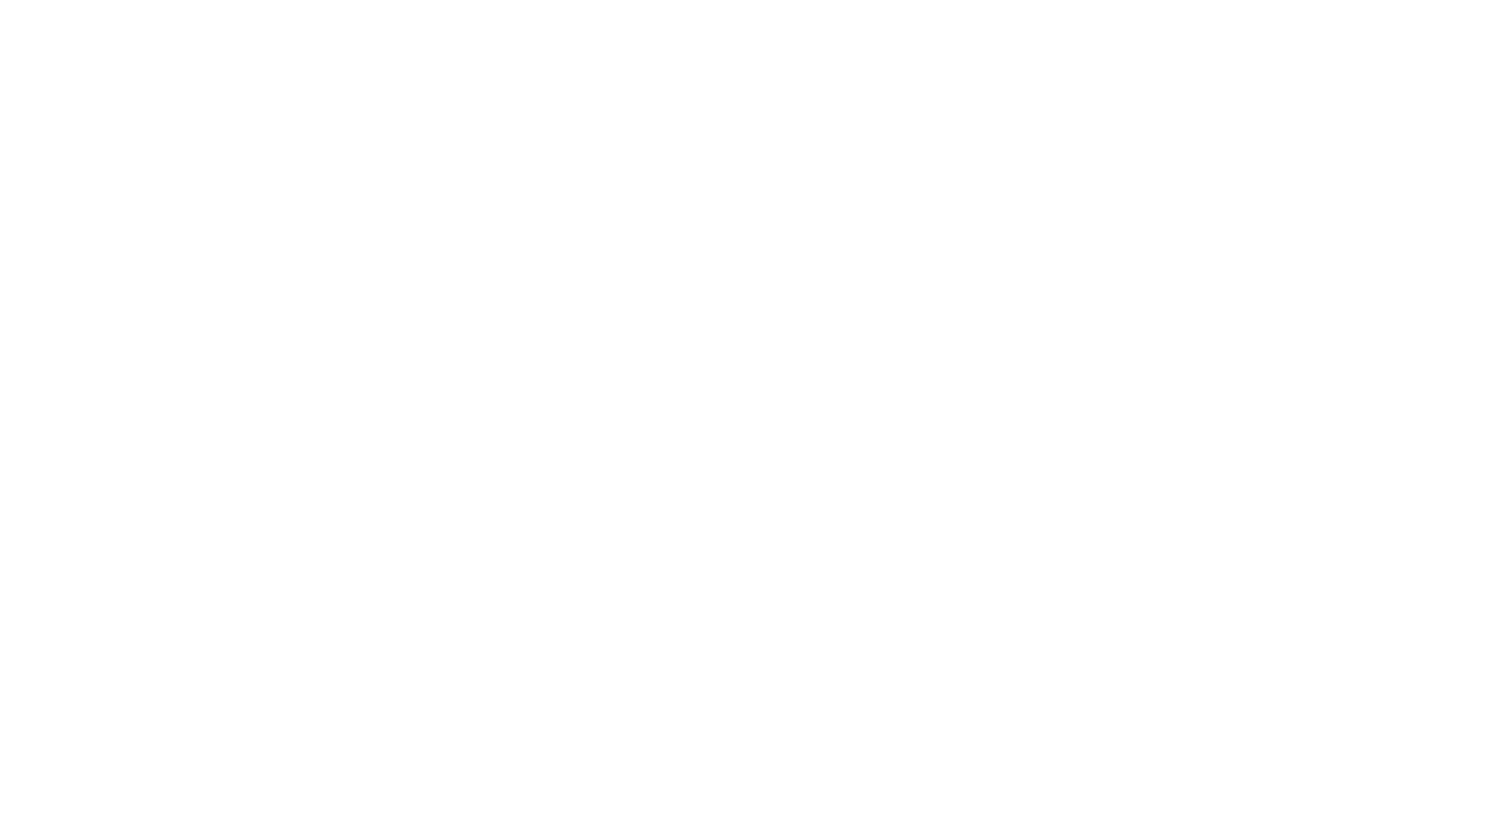 The Reserve at Deer Park